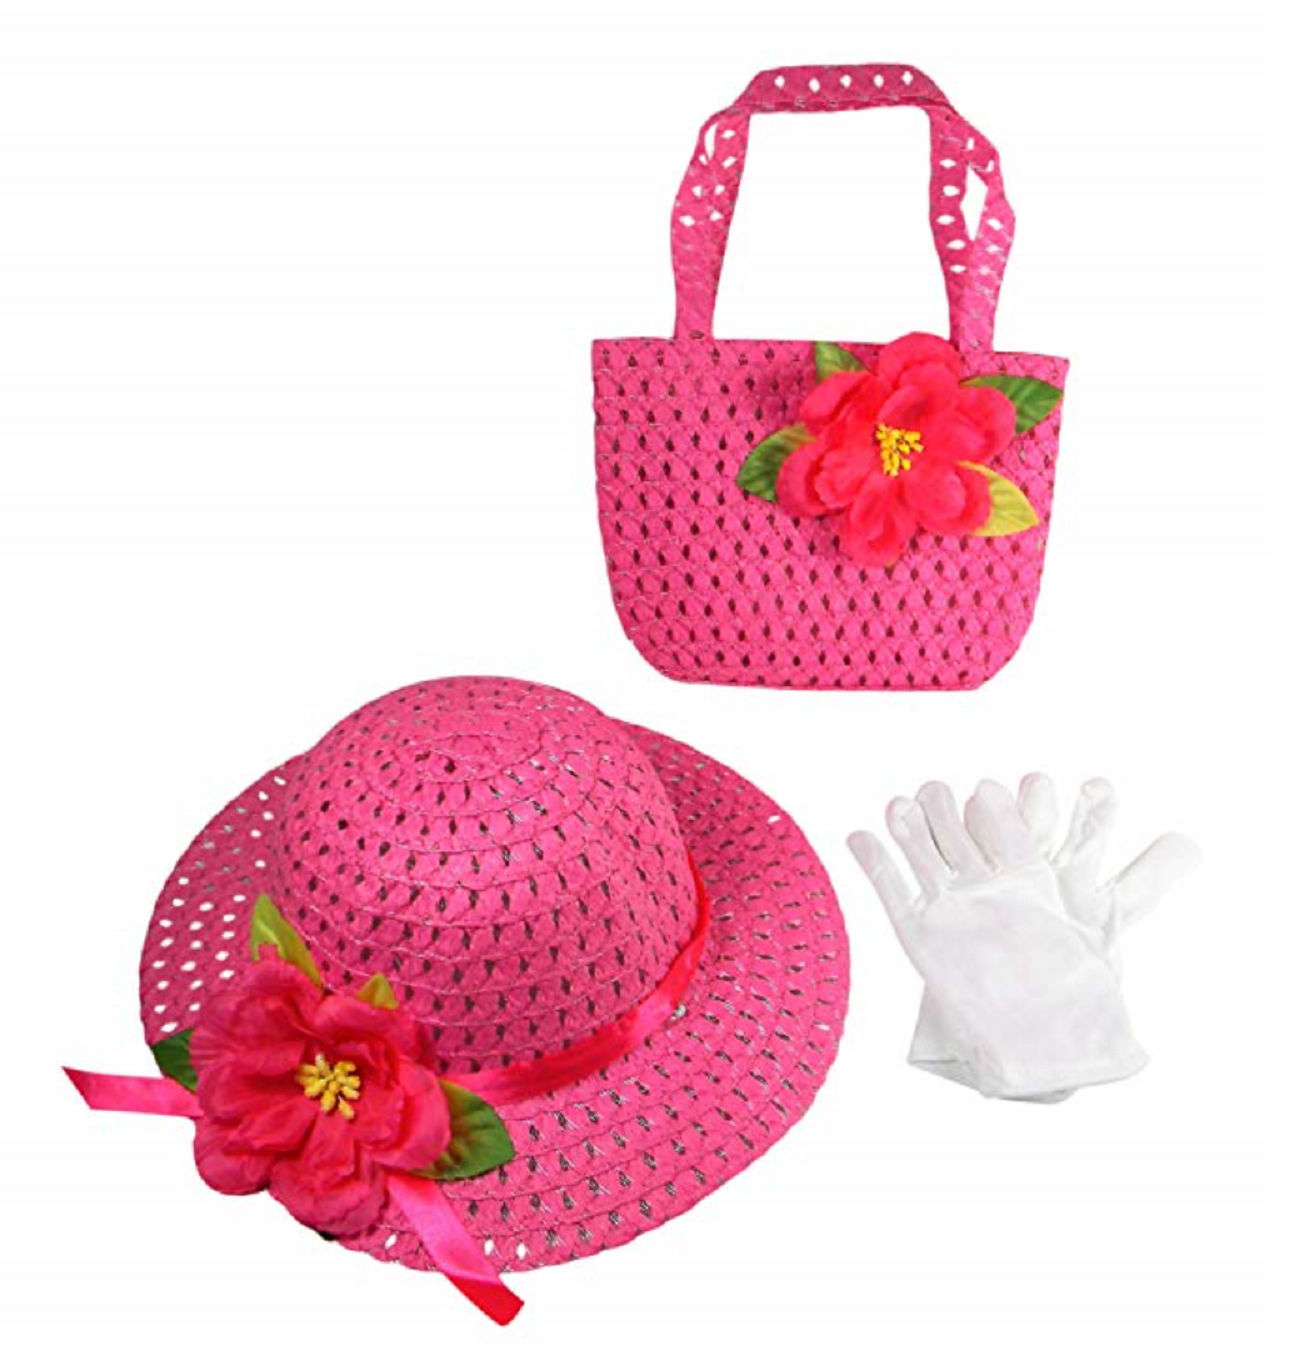 Girls Tea Party Dress Up Play Set with Sun Hat, Purse, and White Gloves